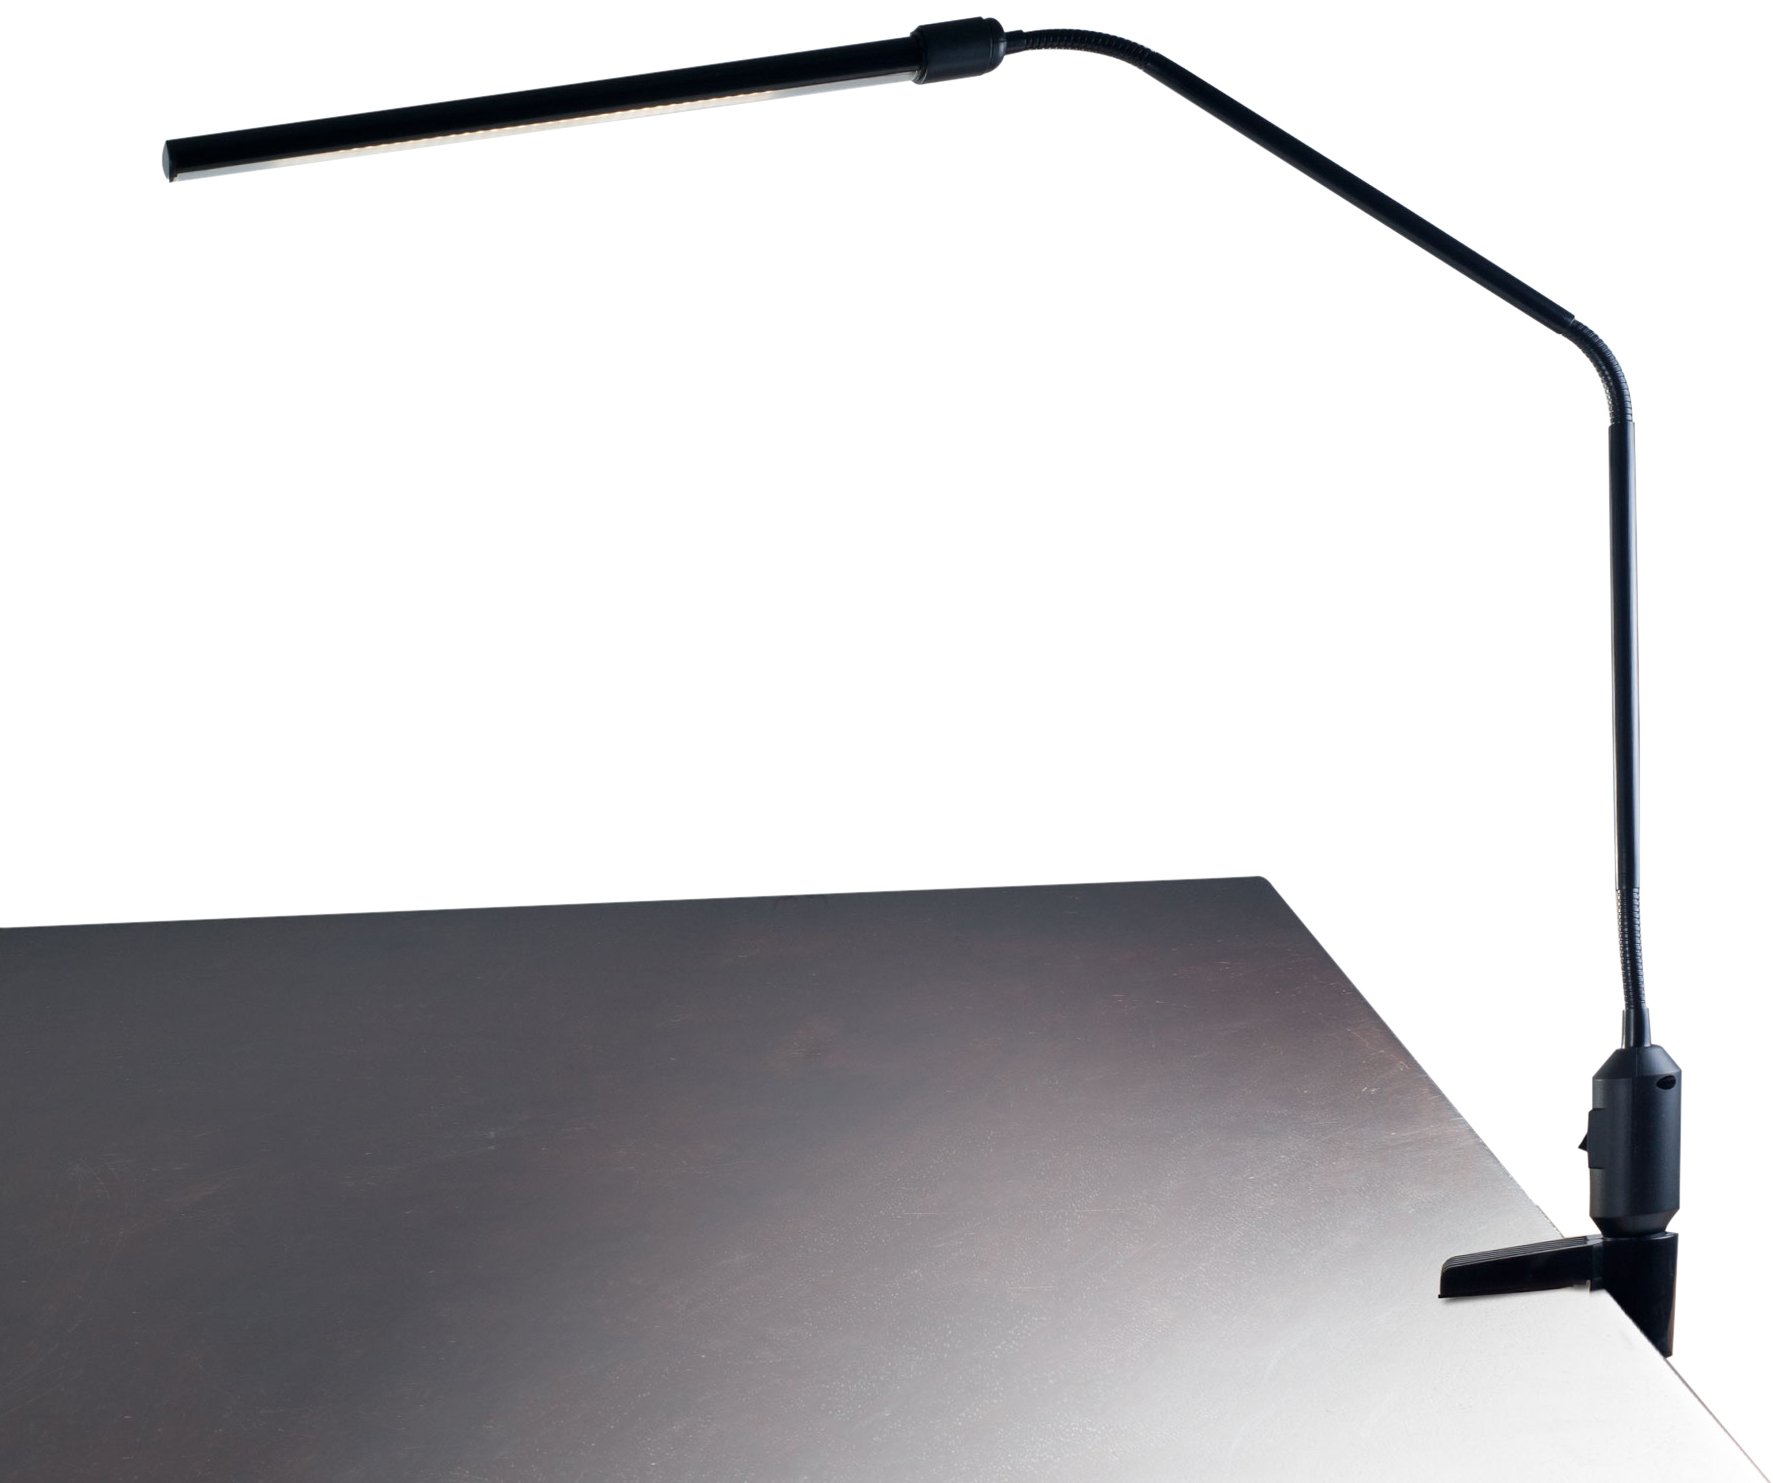 Lavish Home Contemporary Clamp LED Desk Lamp, Black (41'')